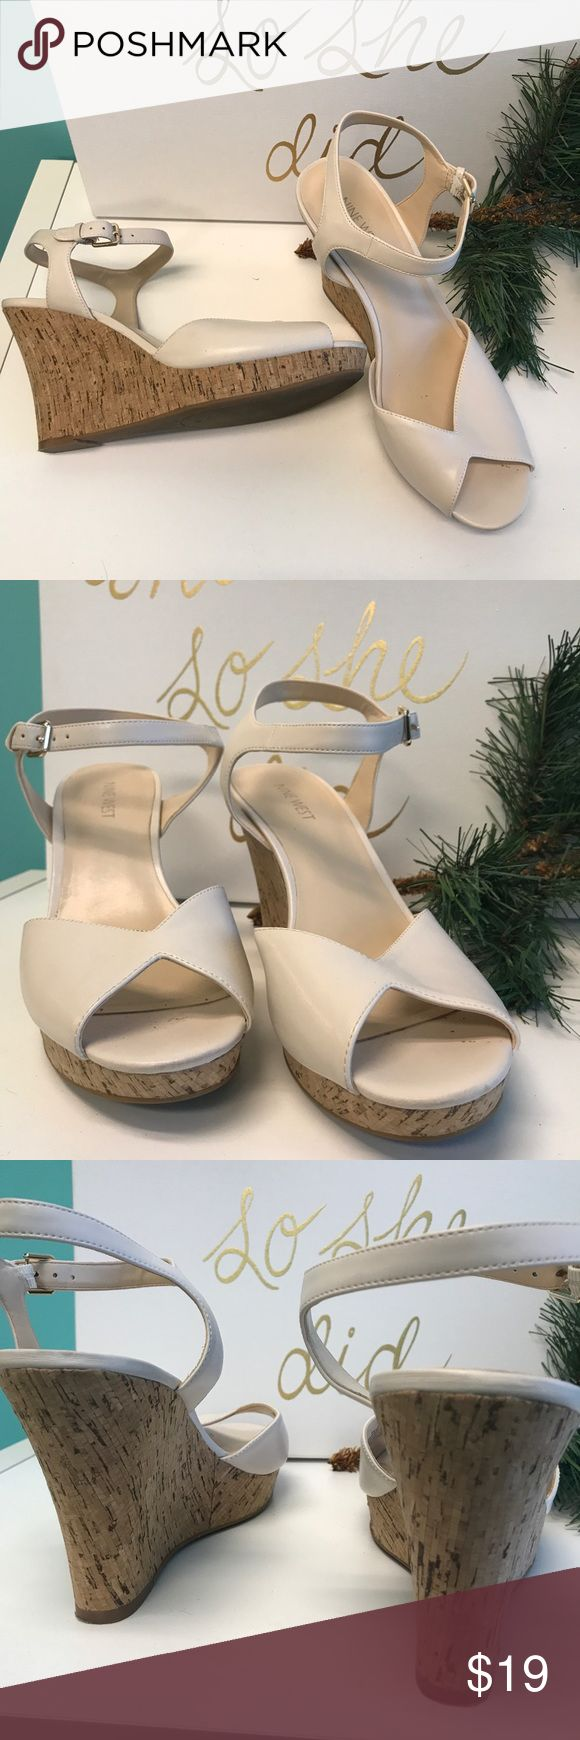 Nine West Cream Wedge With Cork Heels Great condition and super cute! Nine West Shoes Wedges